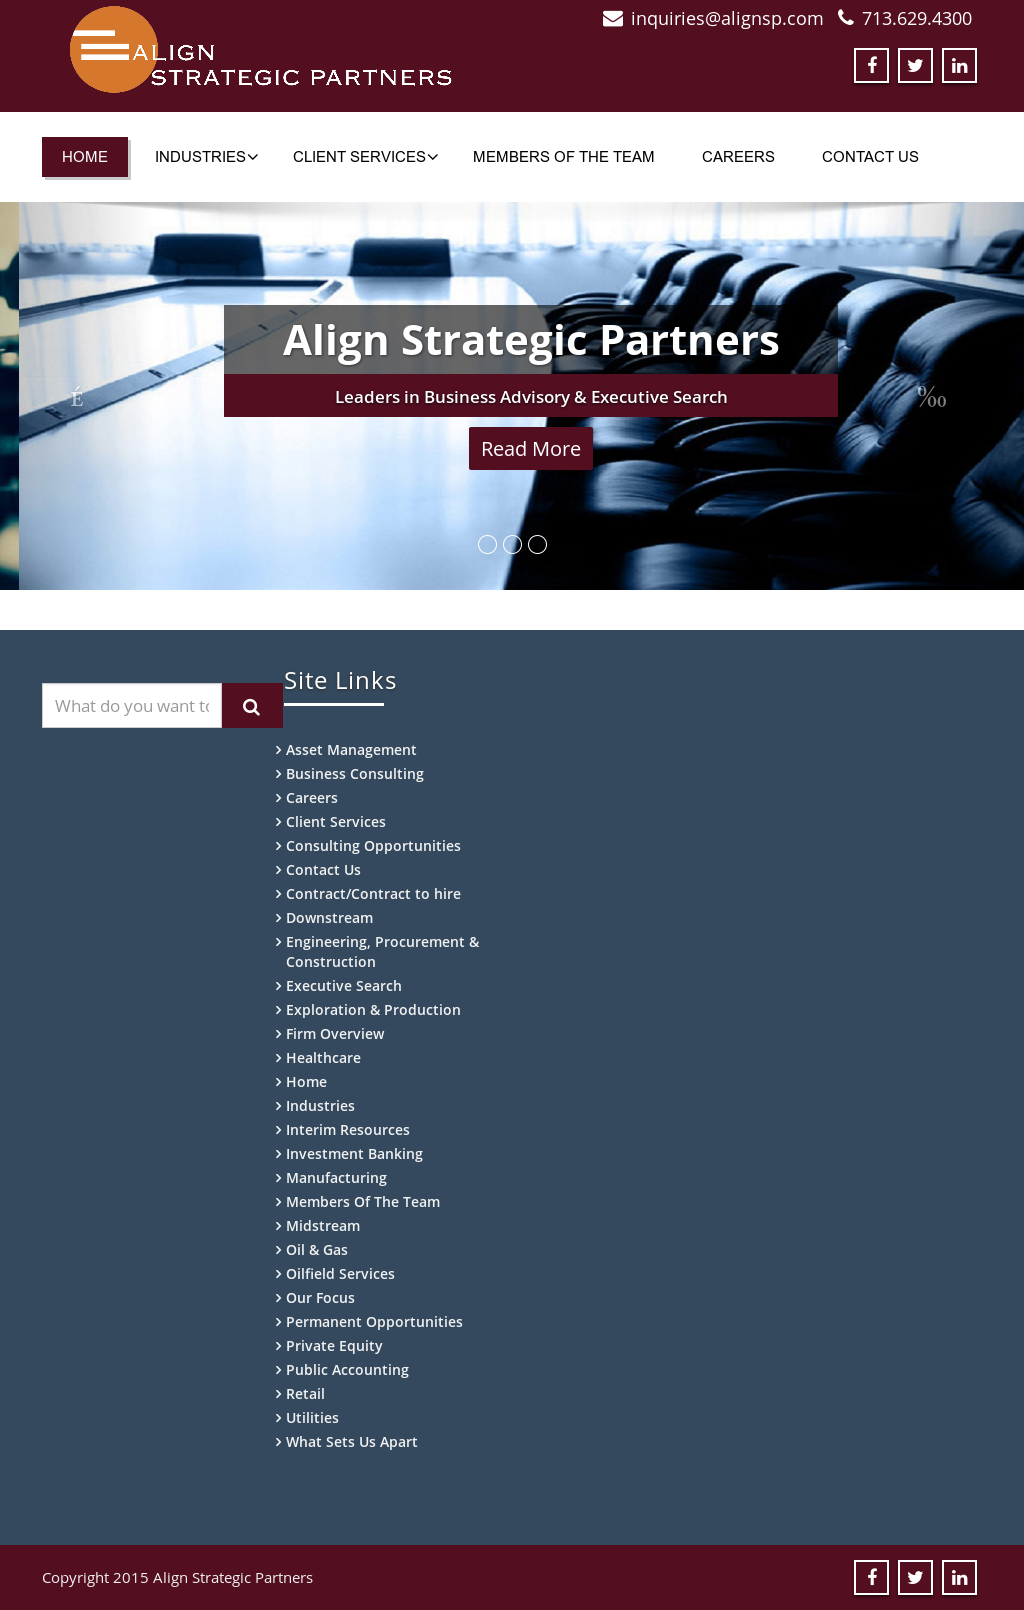 Align Strategic Partners Competitors, Revenue and Employees - Owler